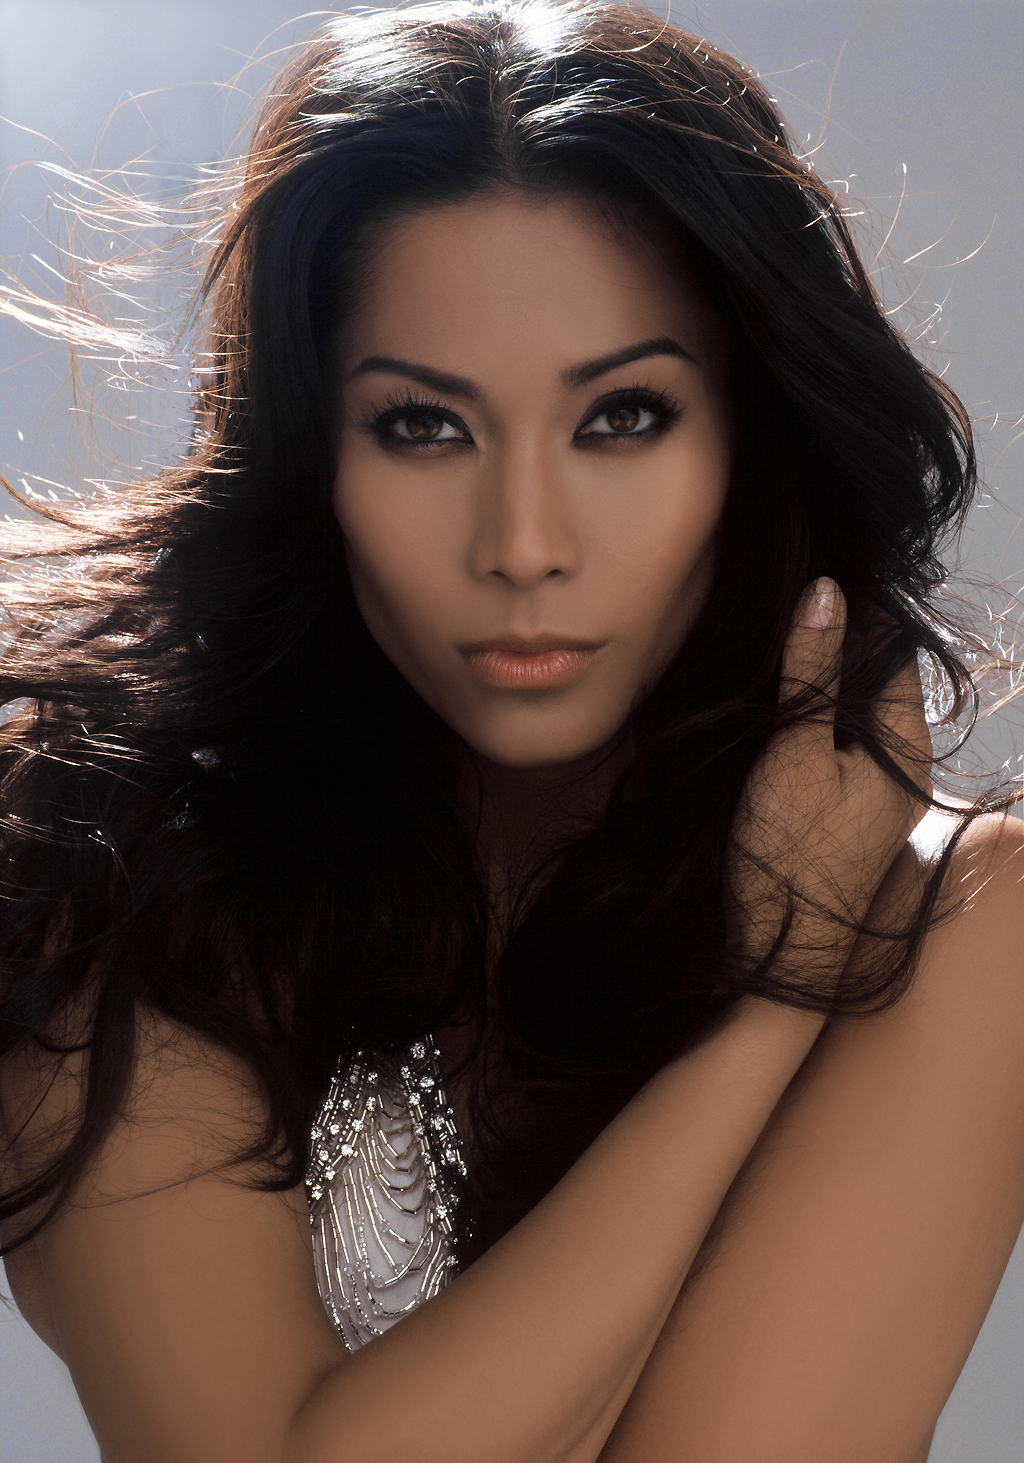 Celebrity wallpapers anggun hot pictures and photo shoot - Celebrity background ...